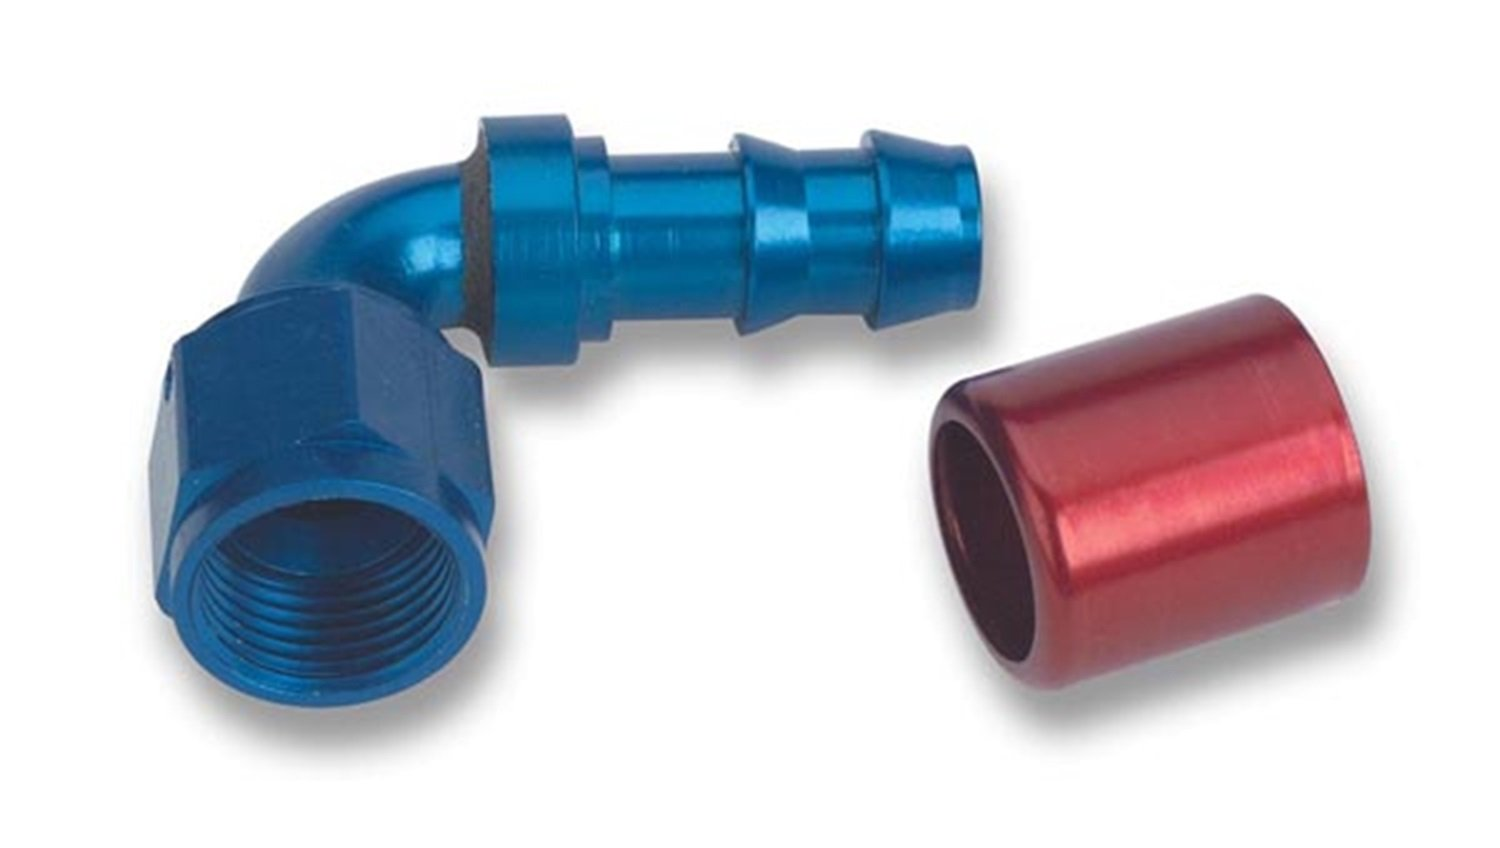 Earl's 709167 Super Stock Blue and Red Anodized Aluminum -6AN 90-Degree Angled Push-on Hose End by Earl's Performance (Image #1)